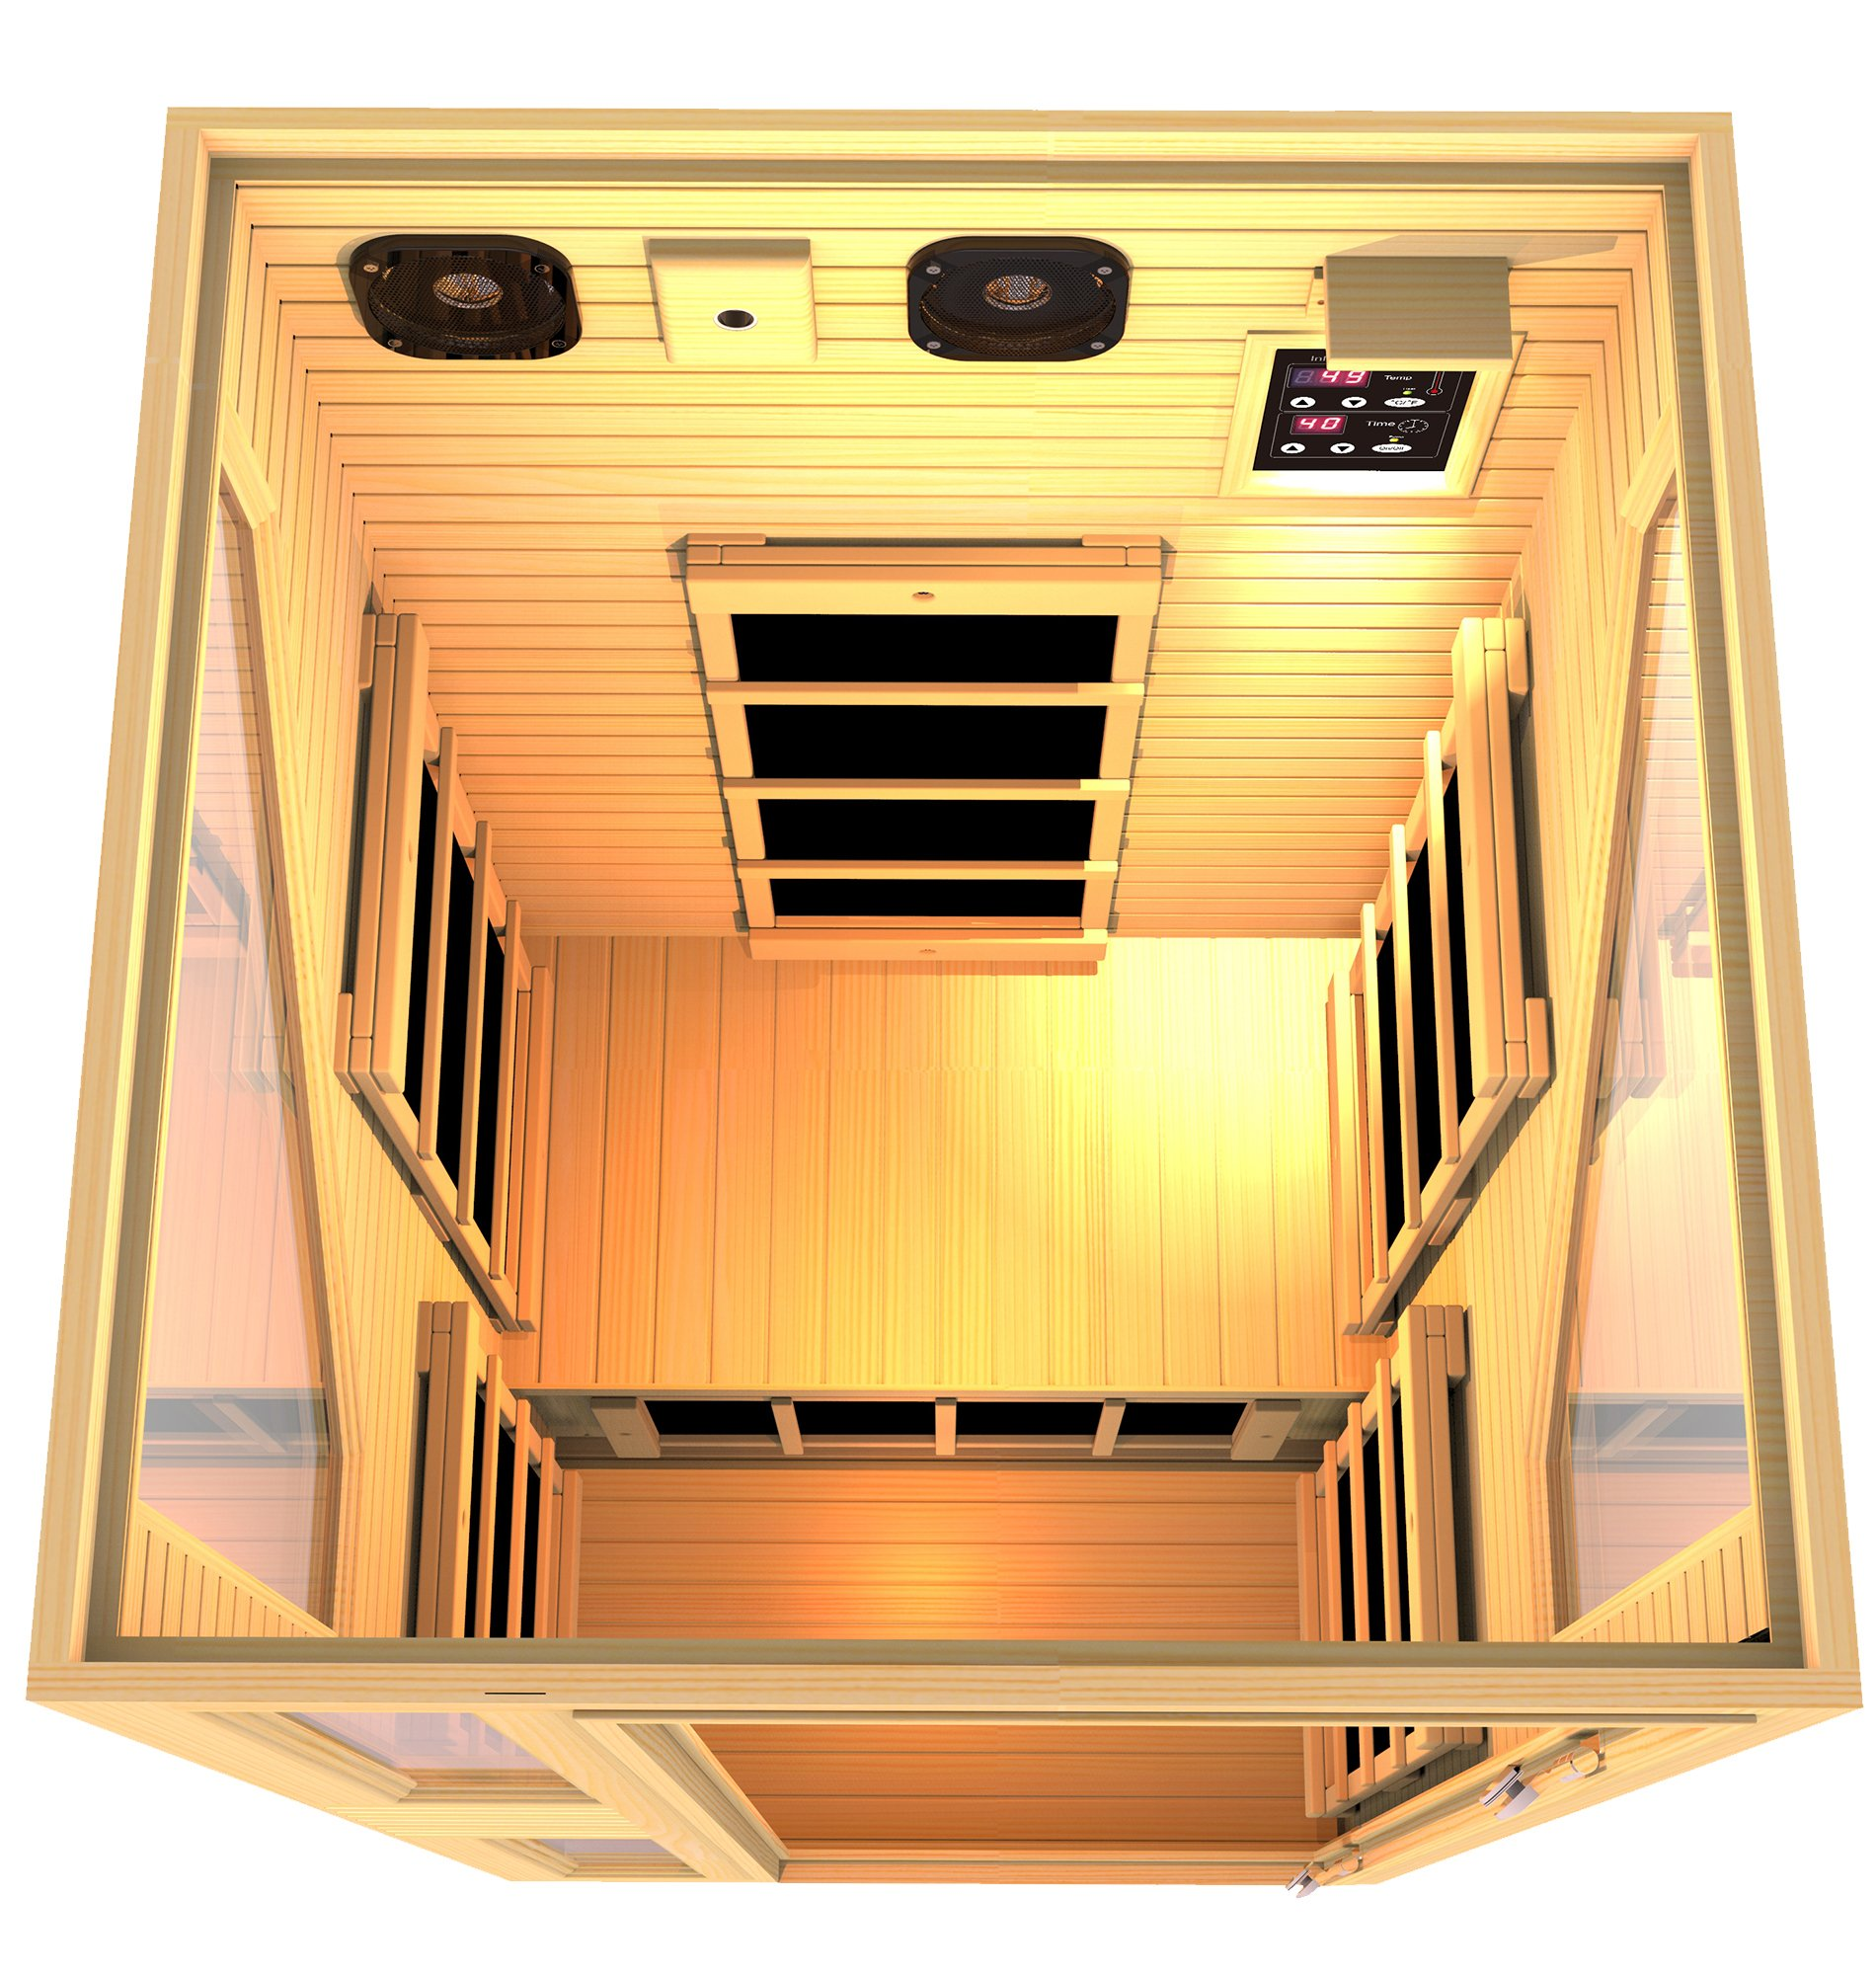 JNH Lifestyles NE1HB1 ENSI Collection 1 Person NO EMF Infrared Sauna Limited by JNH Lifestyles (Image #4)